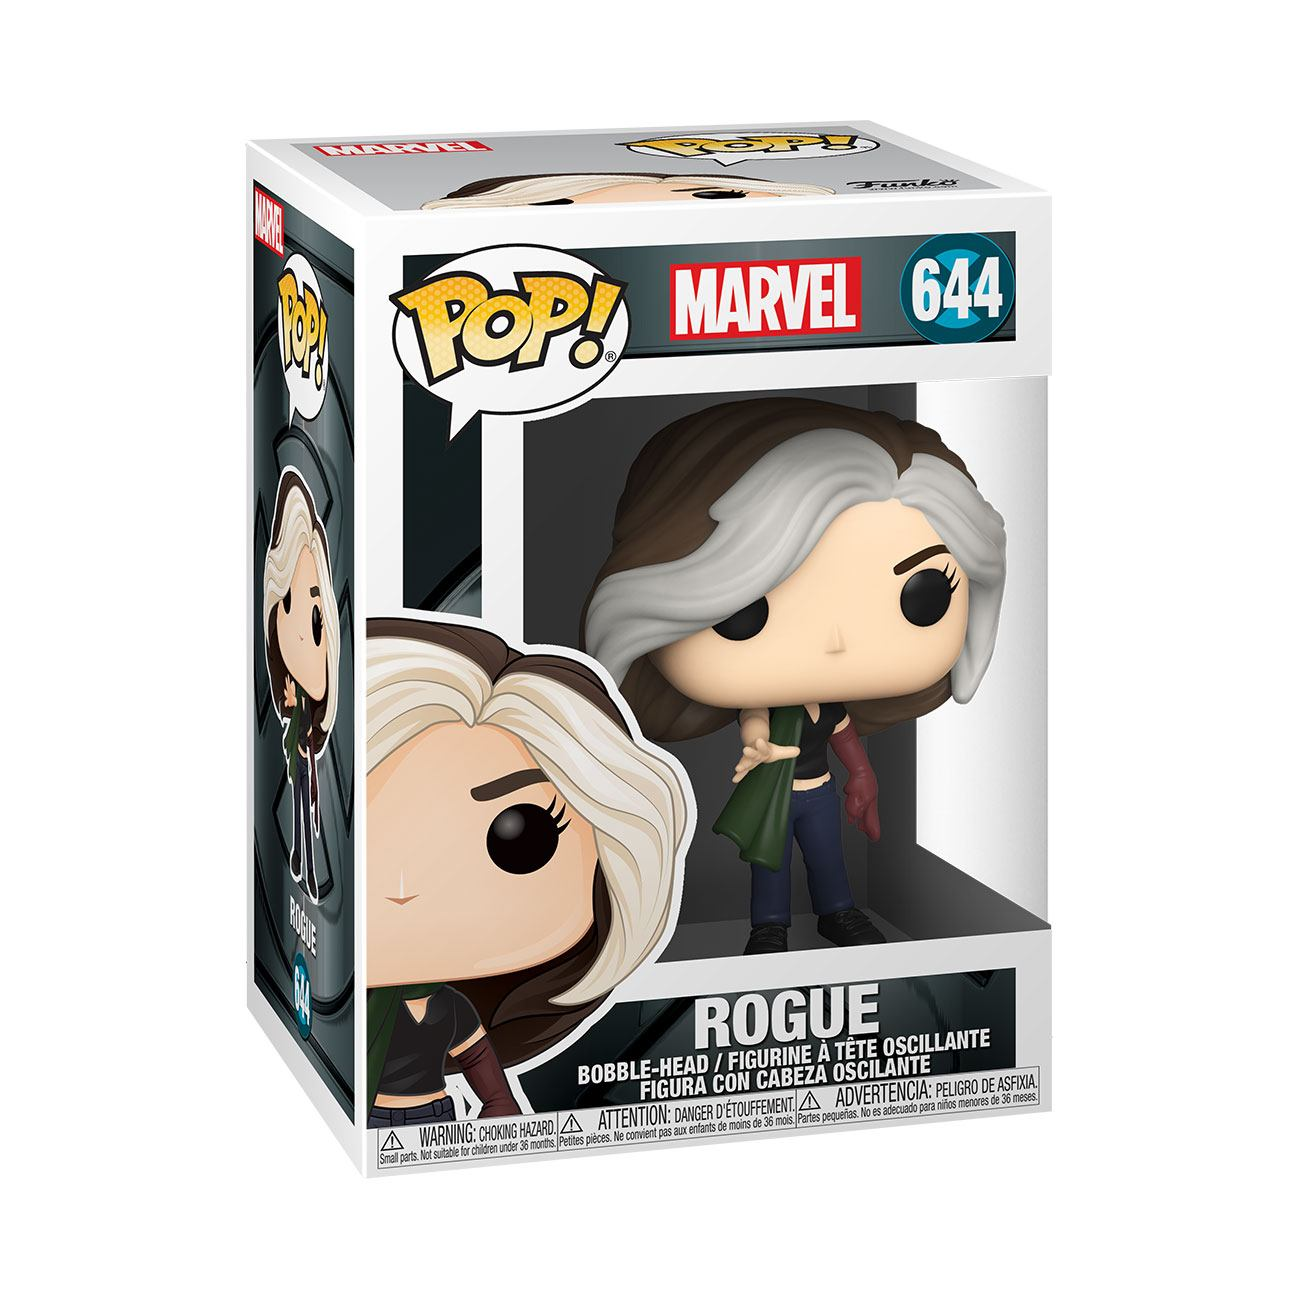 Marvel: X-Men 20th Anniversary - Rogue #644 (POŠKOZENÝ BOX)